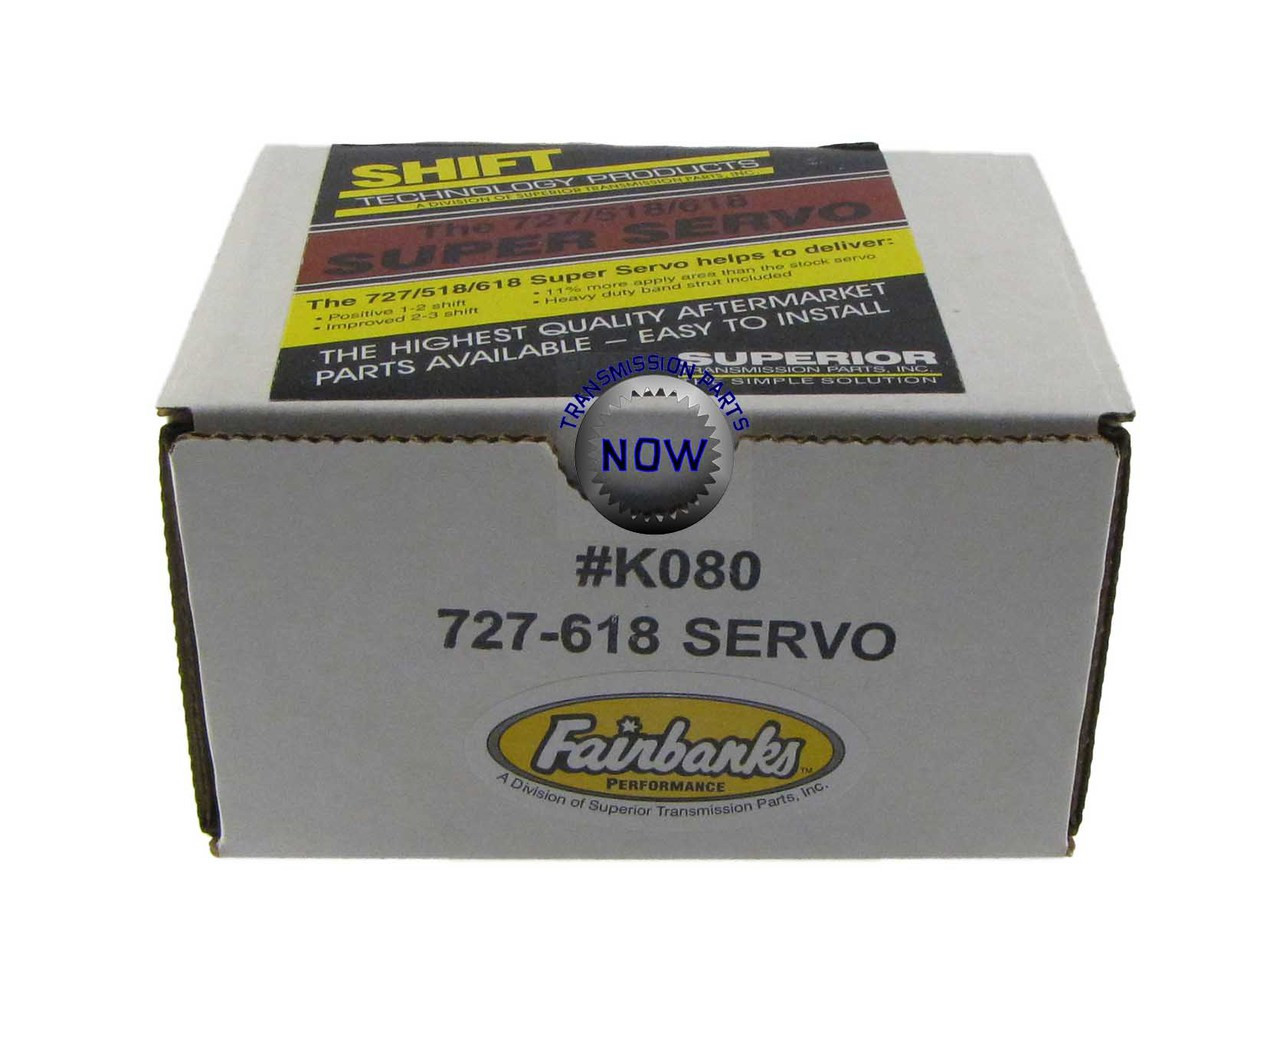 Superior / Fairbanks Super Servo K080 / 727 / A518 / A618 / 46RE / 47RE / 48RE For increase holding power. Firms shifts, Towing, Hot Rods, Upgrade.